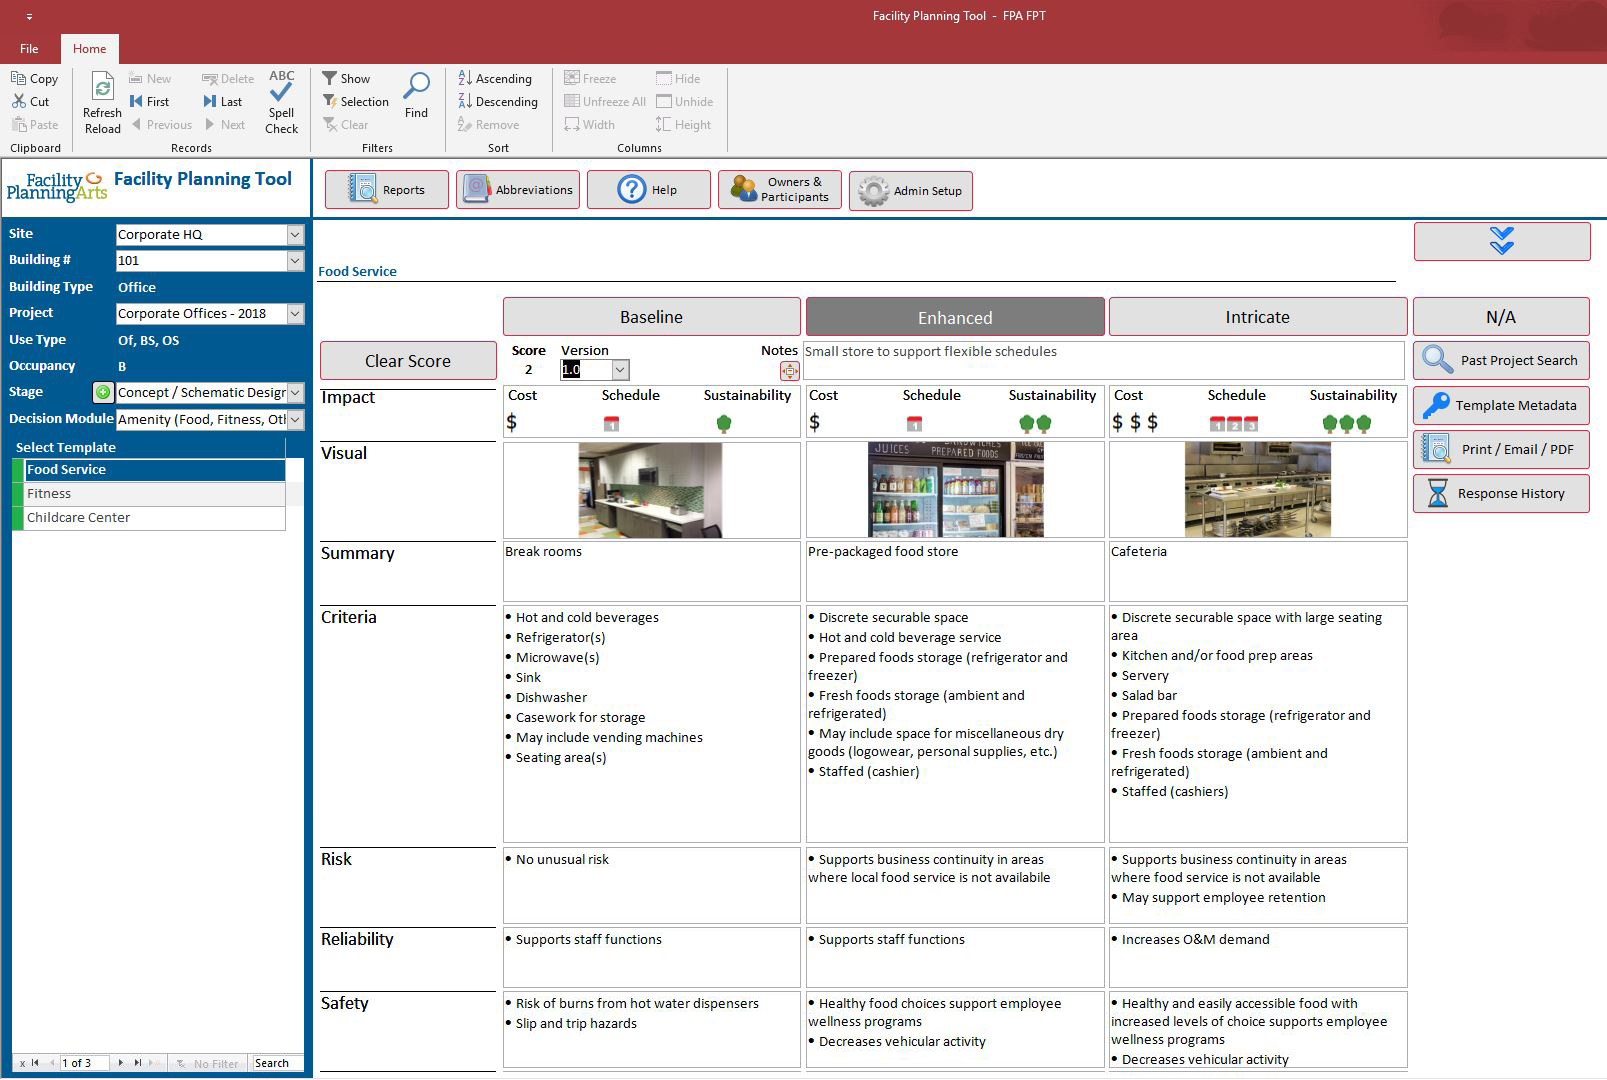 Sample template illustrating how information is organized in the Facility Planning Tool, with over 90 templates included in the program